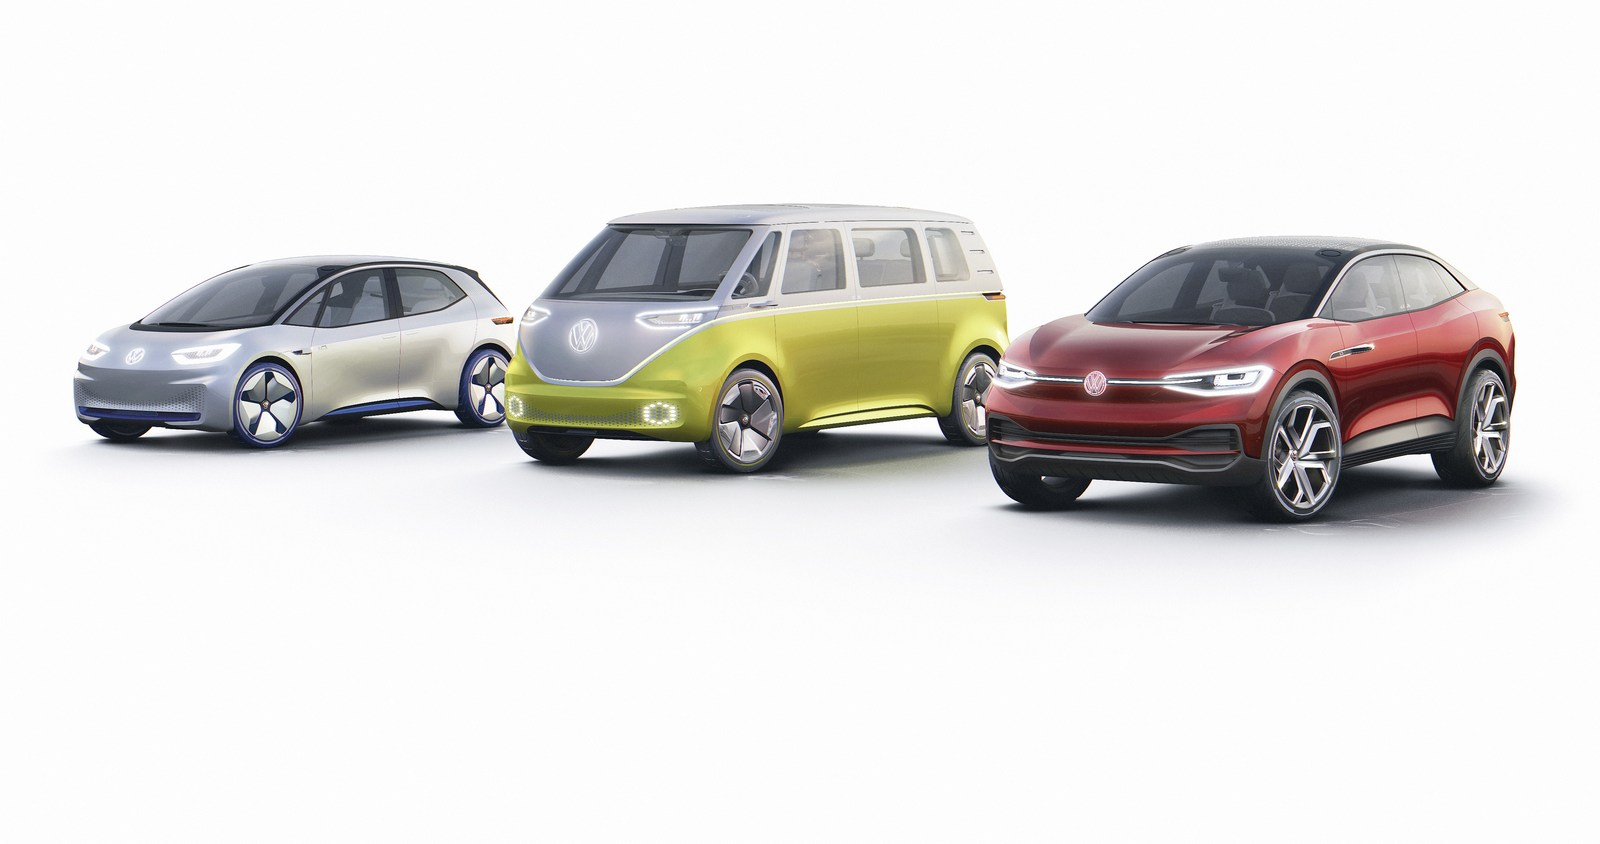 Vw I D Crozz Ii Revealed Looks Like The Best Volkswagen